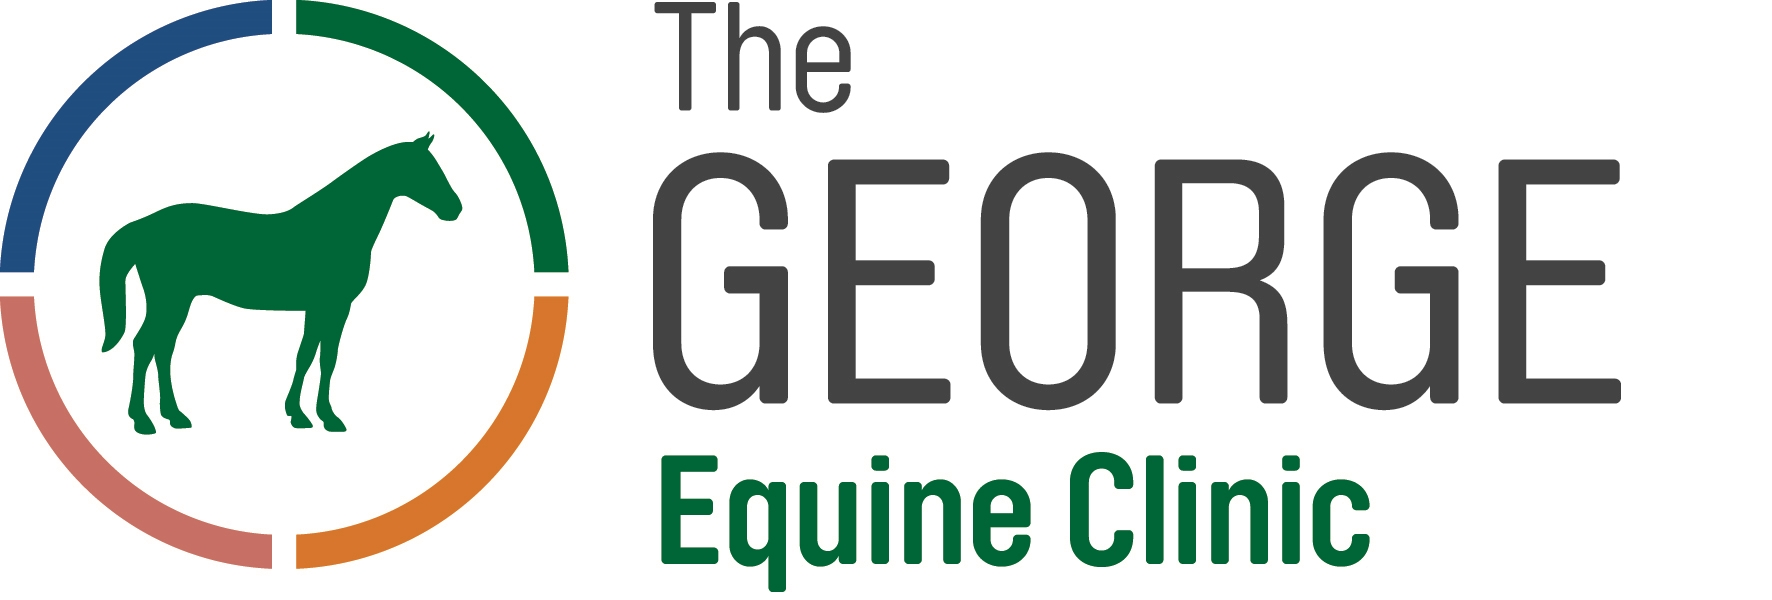 The George Equine Clinic